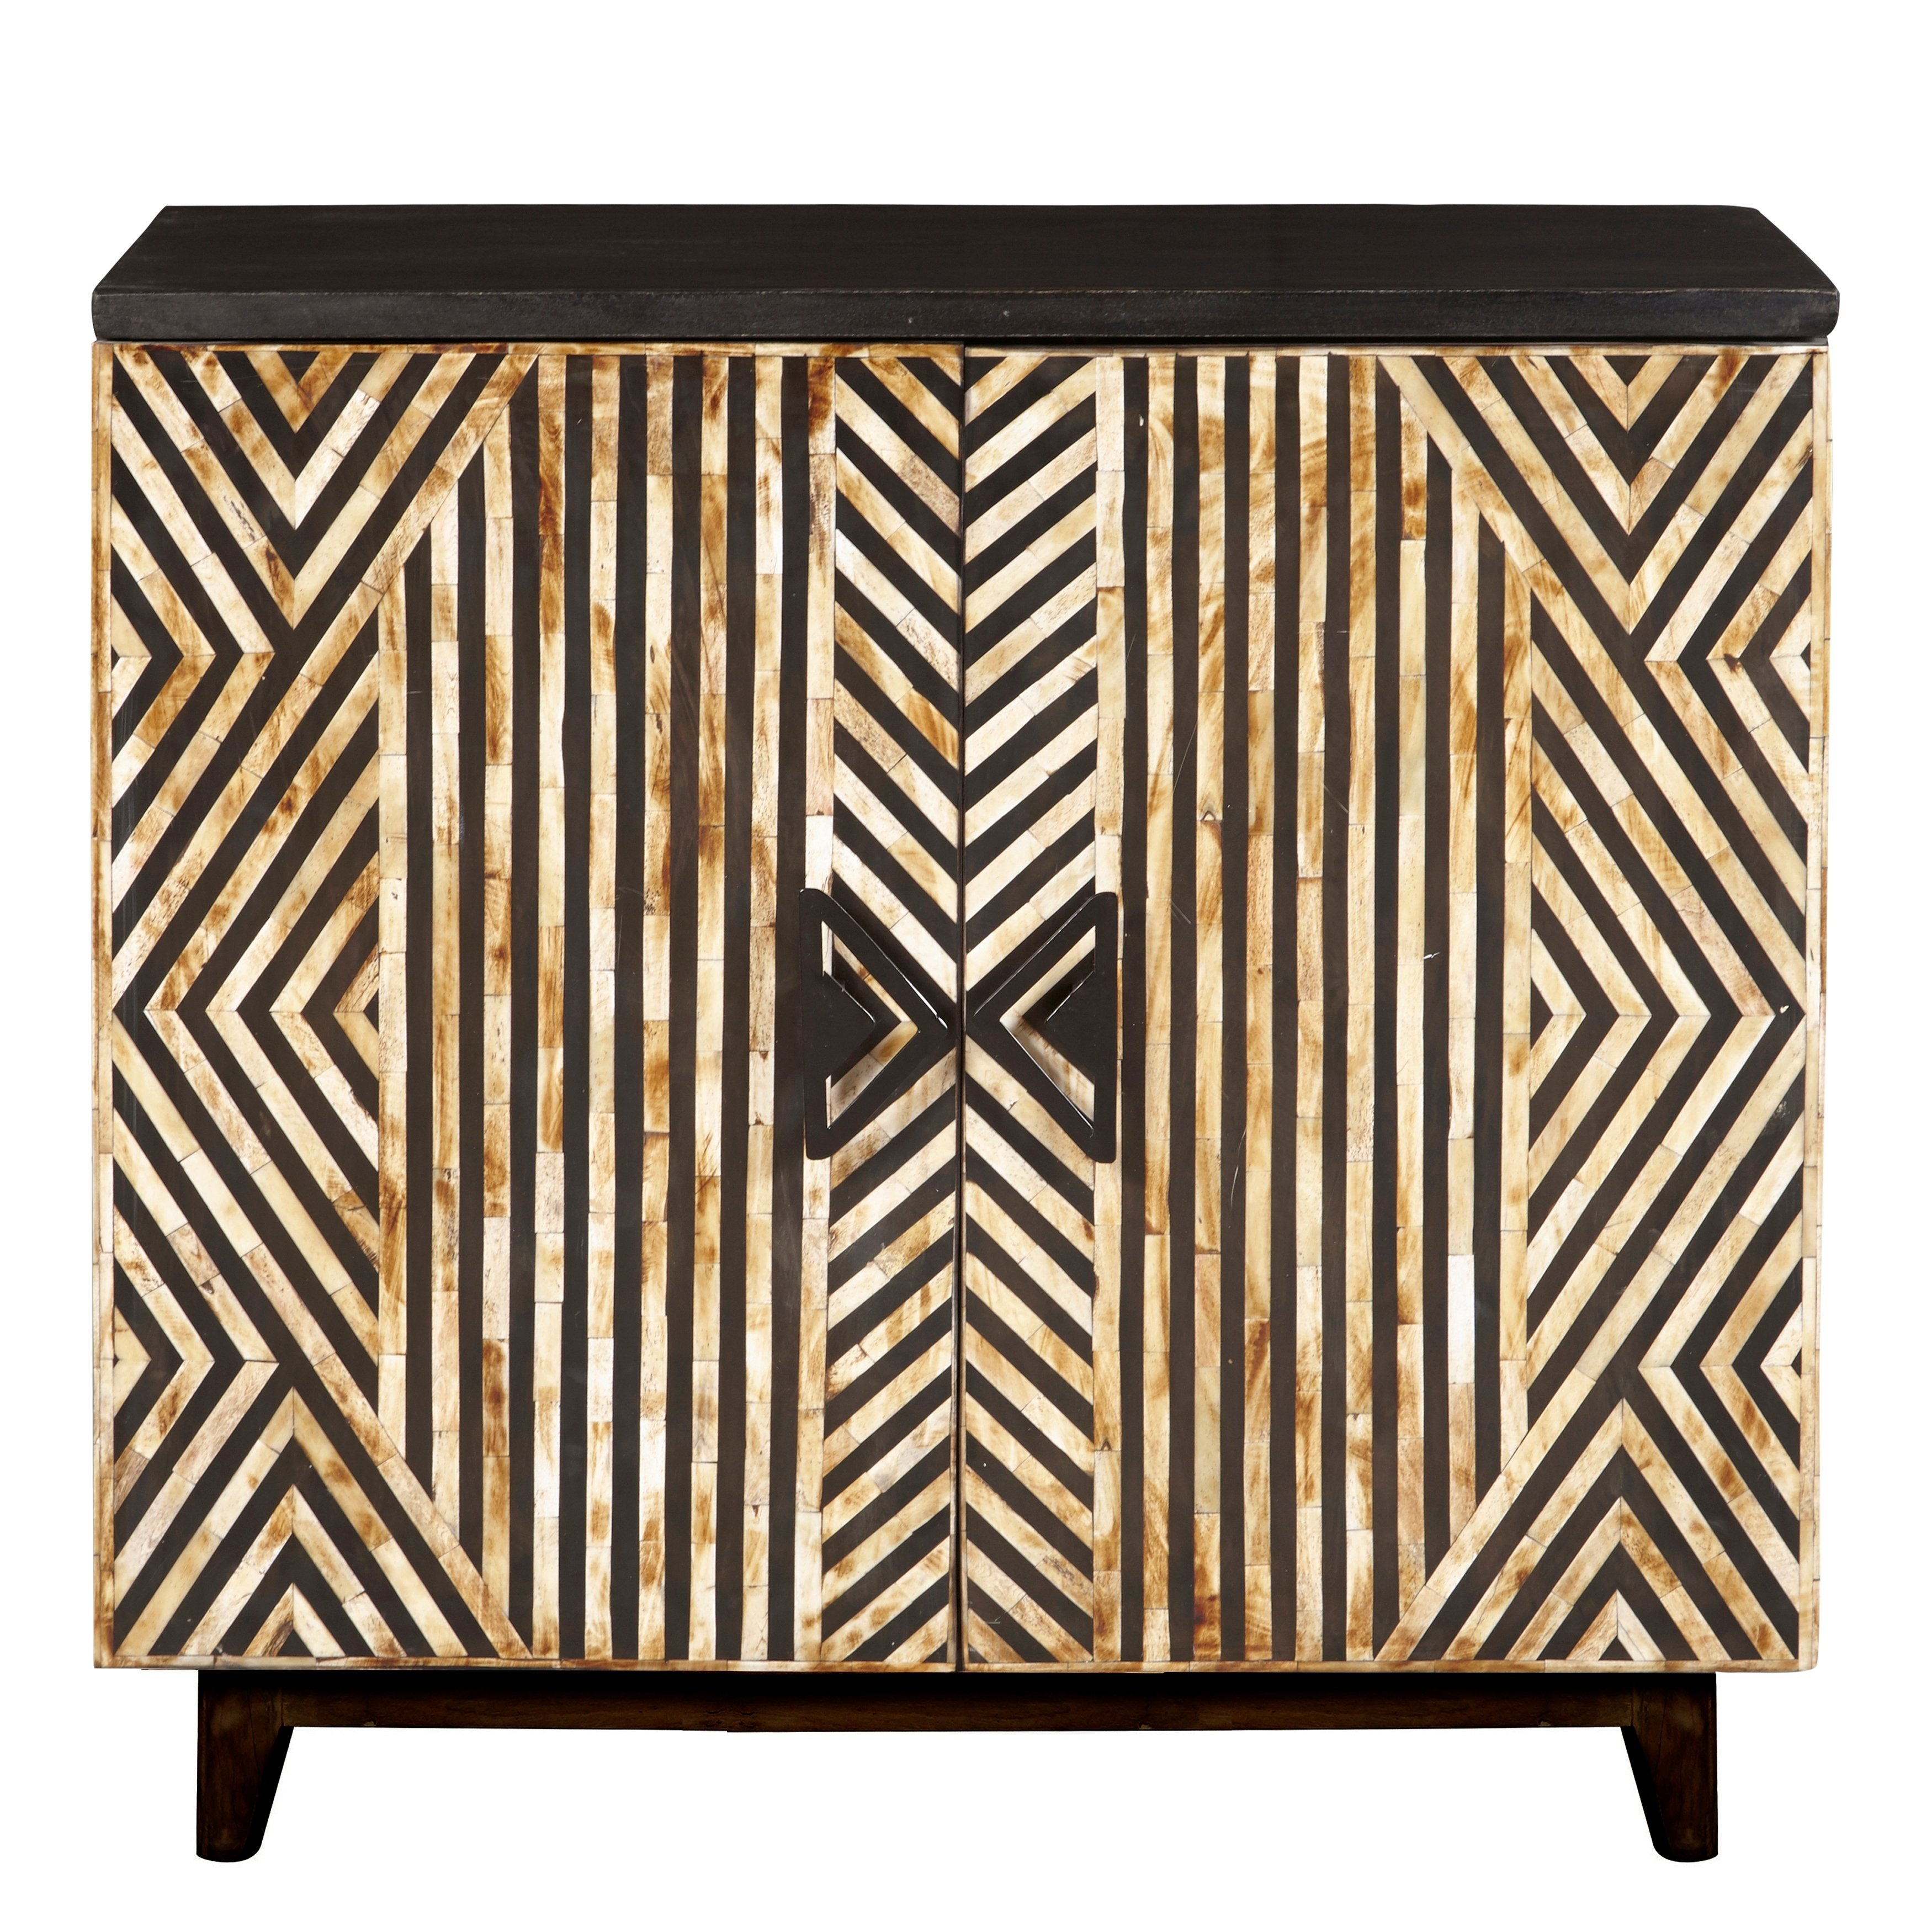 Black/cream Wood Rustic Striped Bone Inlay Accent Chest with regard to Multi Stripe Credenzas (Image 5 of 30)